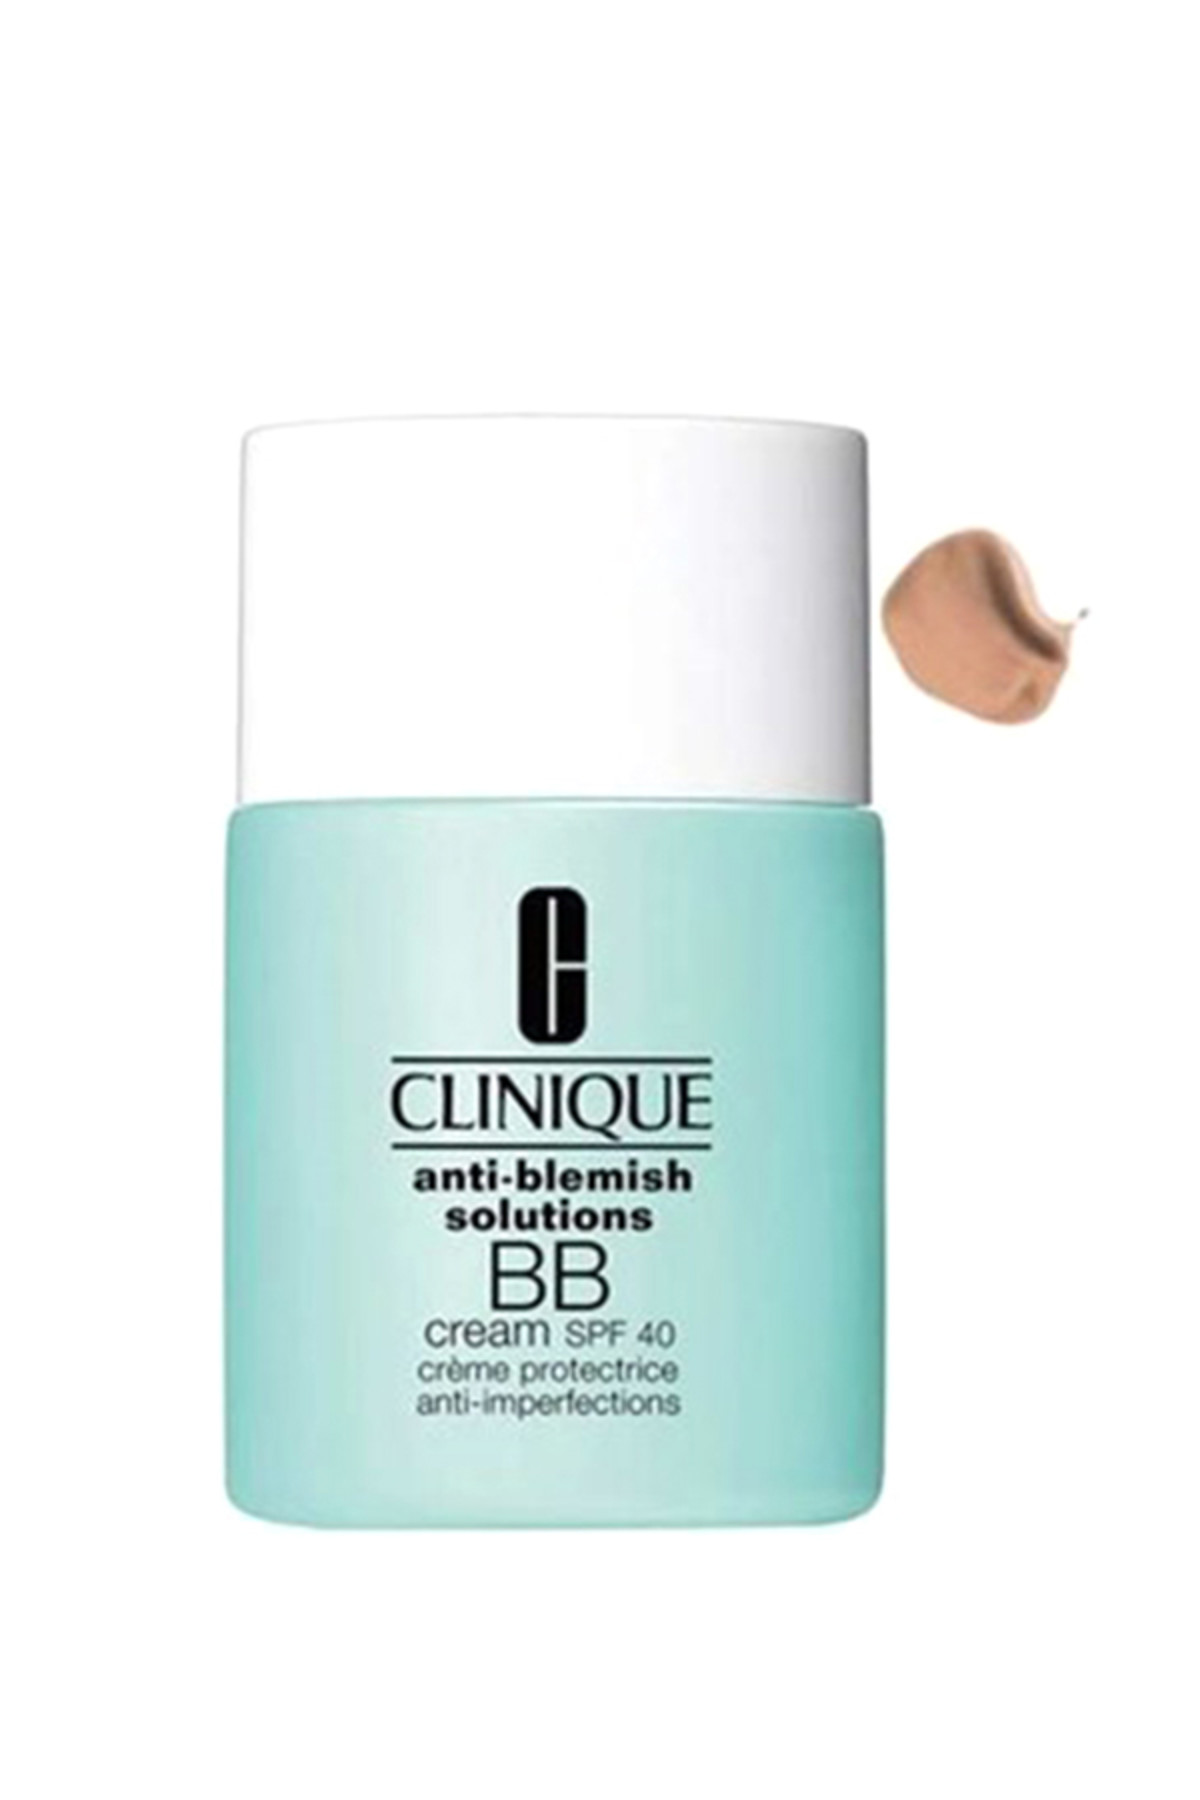 Clinique BB Krem - Anti Blemish Solutions BB Cream Spf 40 02 Light Medium 30 ml 020714694647 2